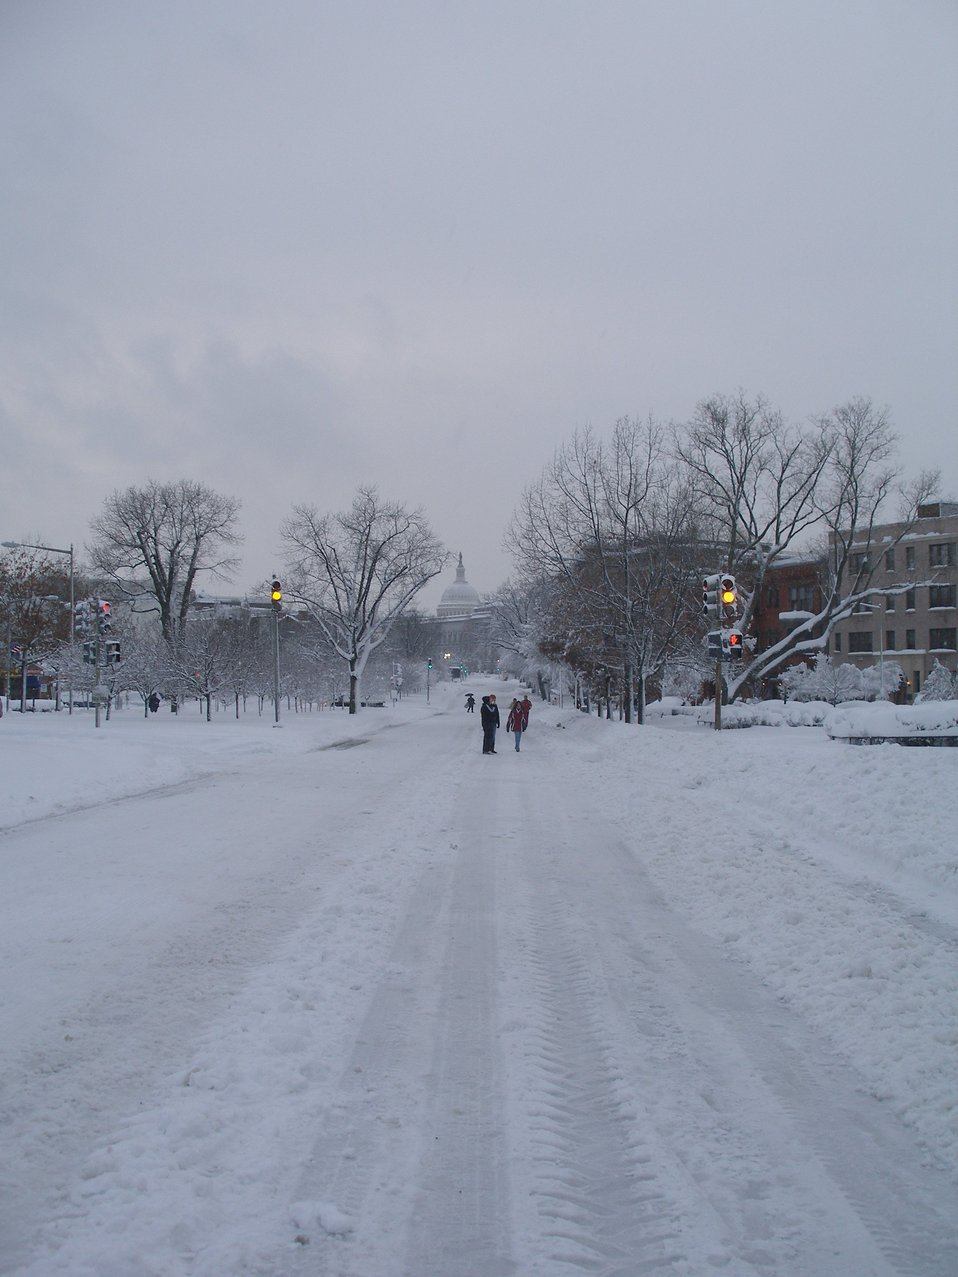 People out enjoying the Capitol Hill area of DC on a vehicle-deserted street following the February 5-6 snowstorm.  Pennysylvania Avenue, one of the busiest automobile thoroughfares in DC.